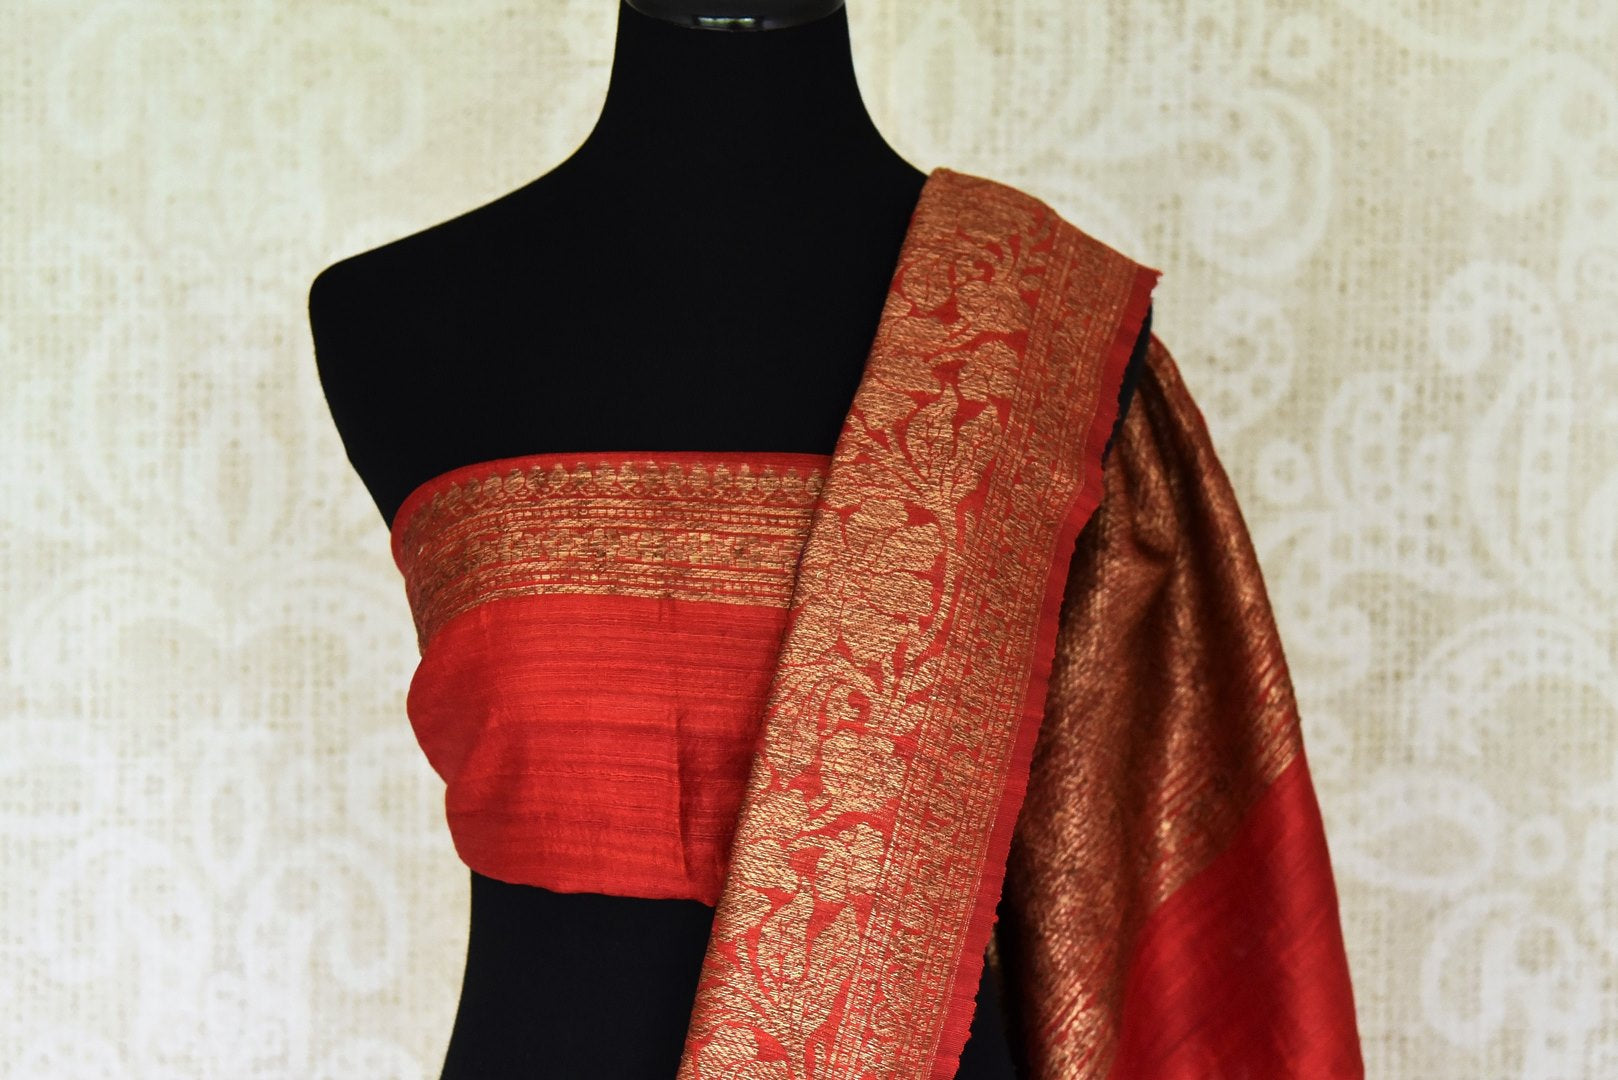 Buy purple tussar Benarasi saree online in USA with red antique zari border. Be an epitome of elegance in exquisite Banarasi saris from Pure Elegance Indian clothing store in USA.-blouse pallu